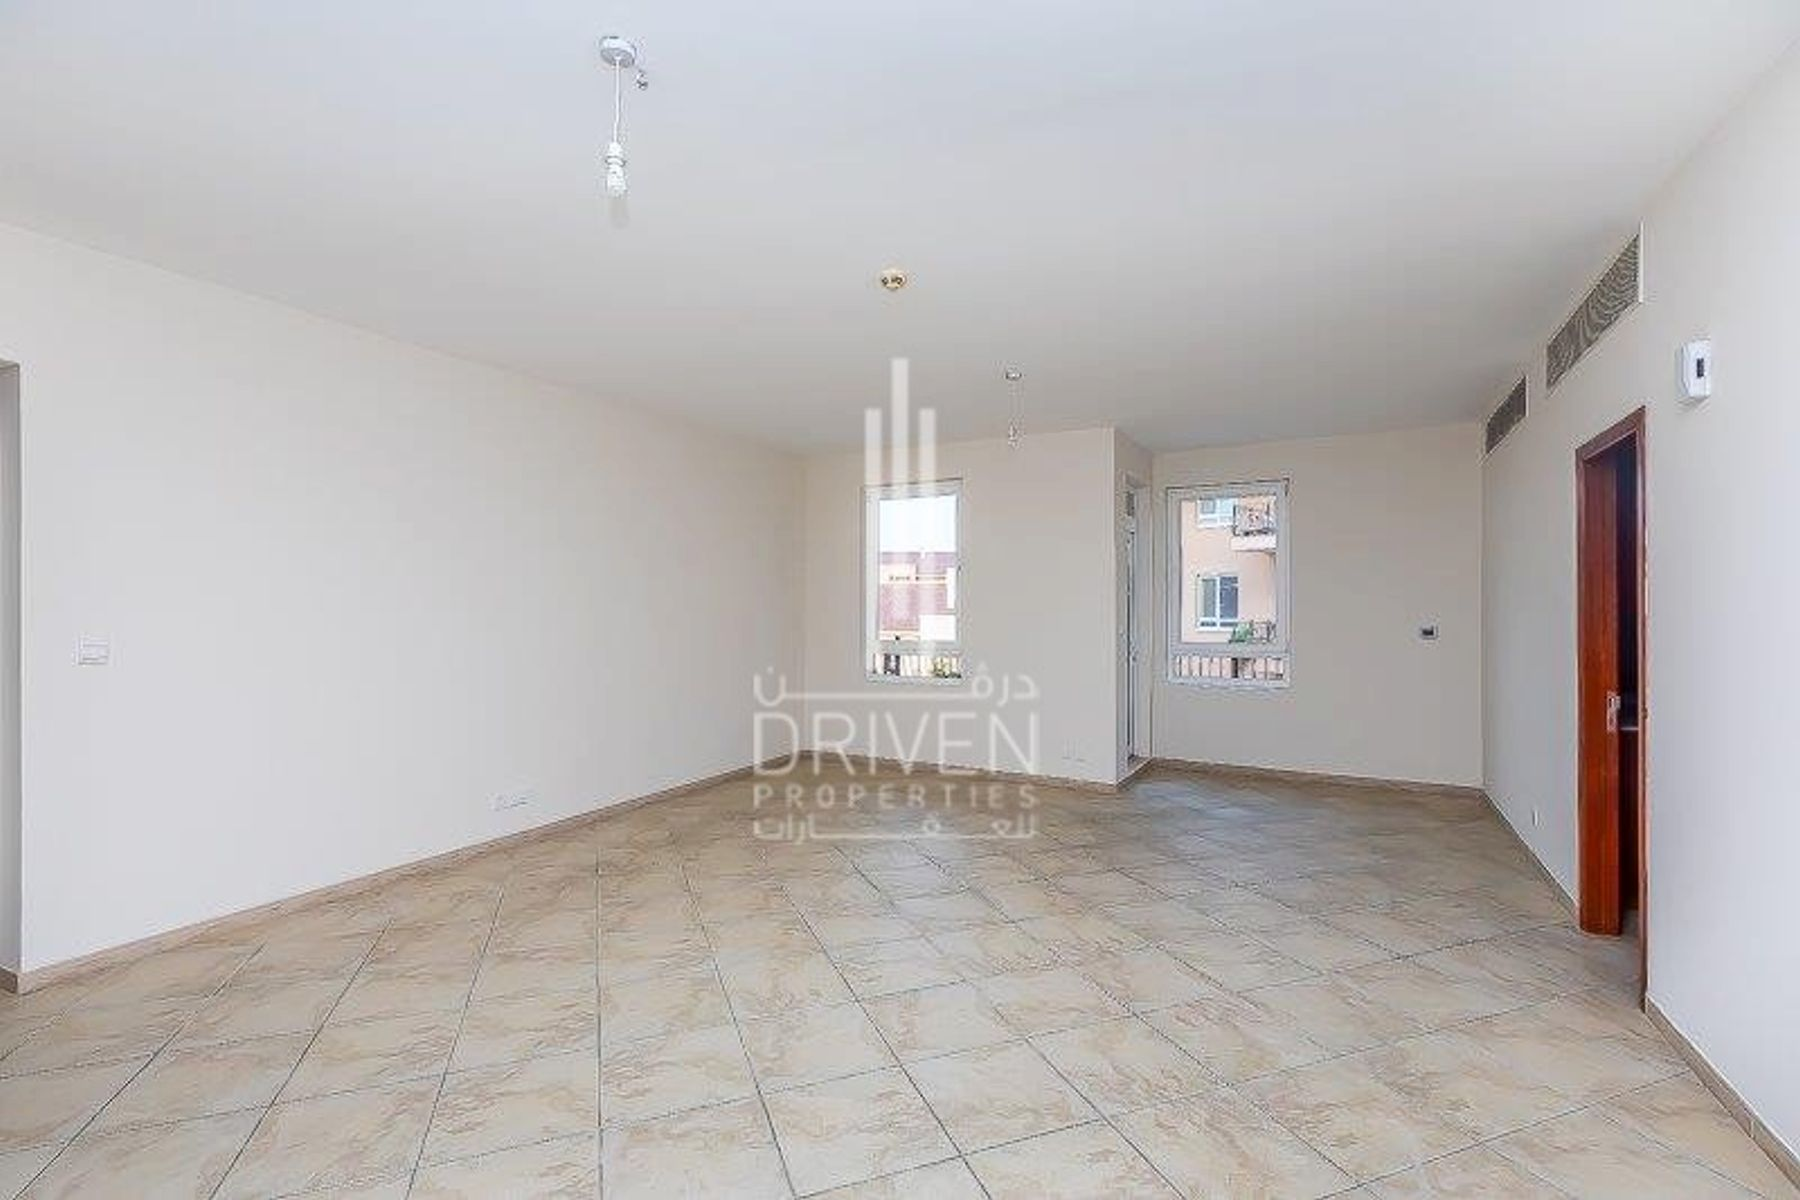 Apartment for Rent in Abbey Crescent 1, Motor City